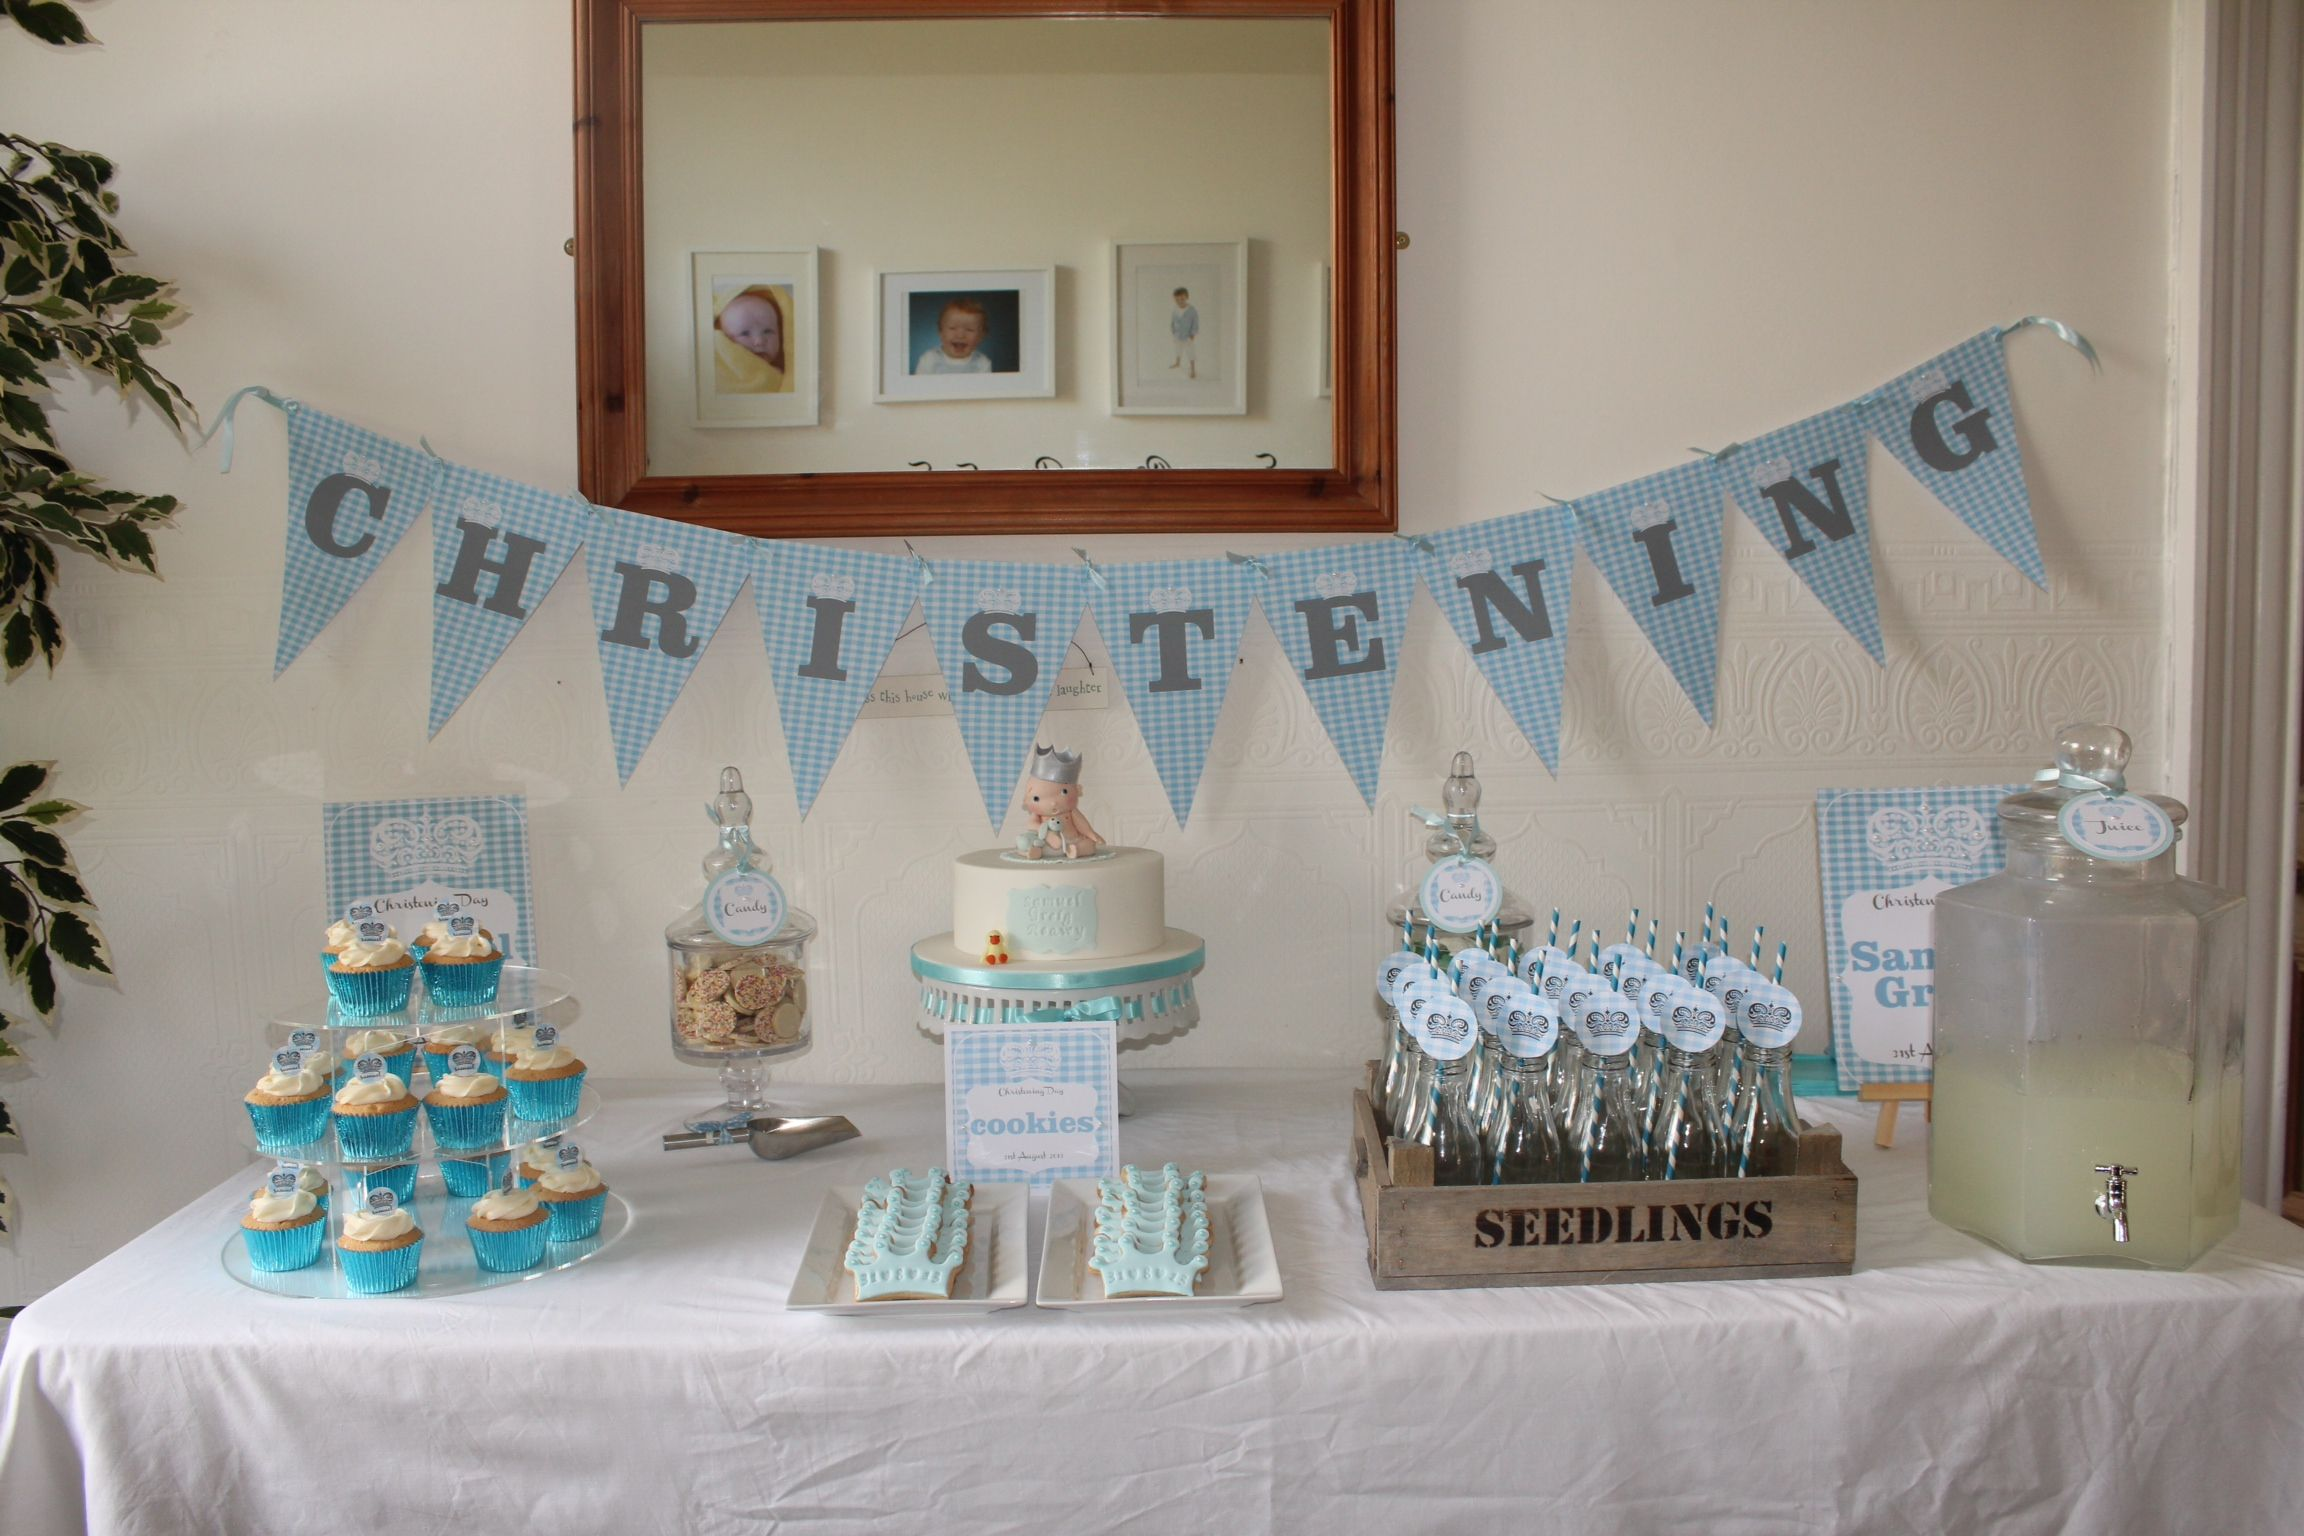 Cake Table Ideas For Christening : Baby boy christening dessert table Kidz stuff ...